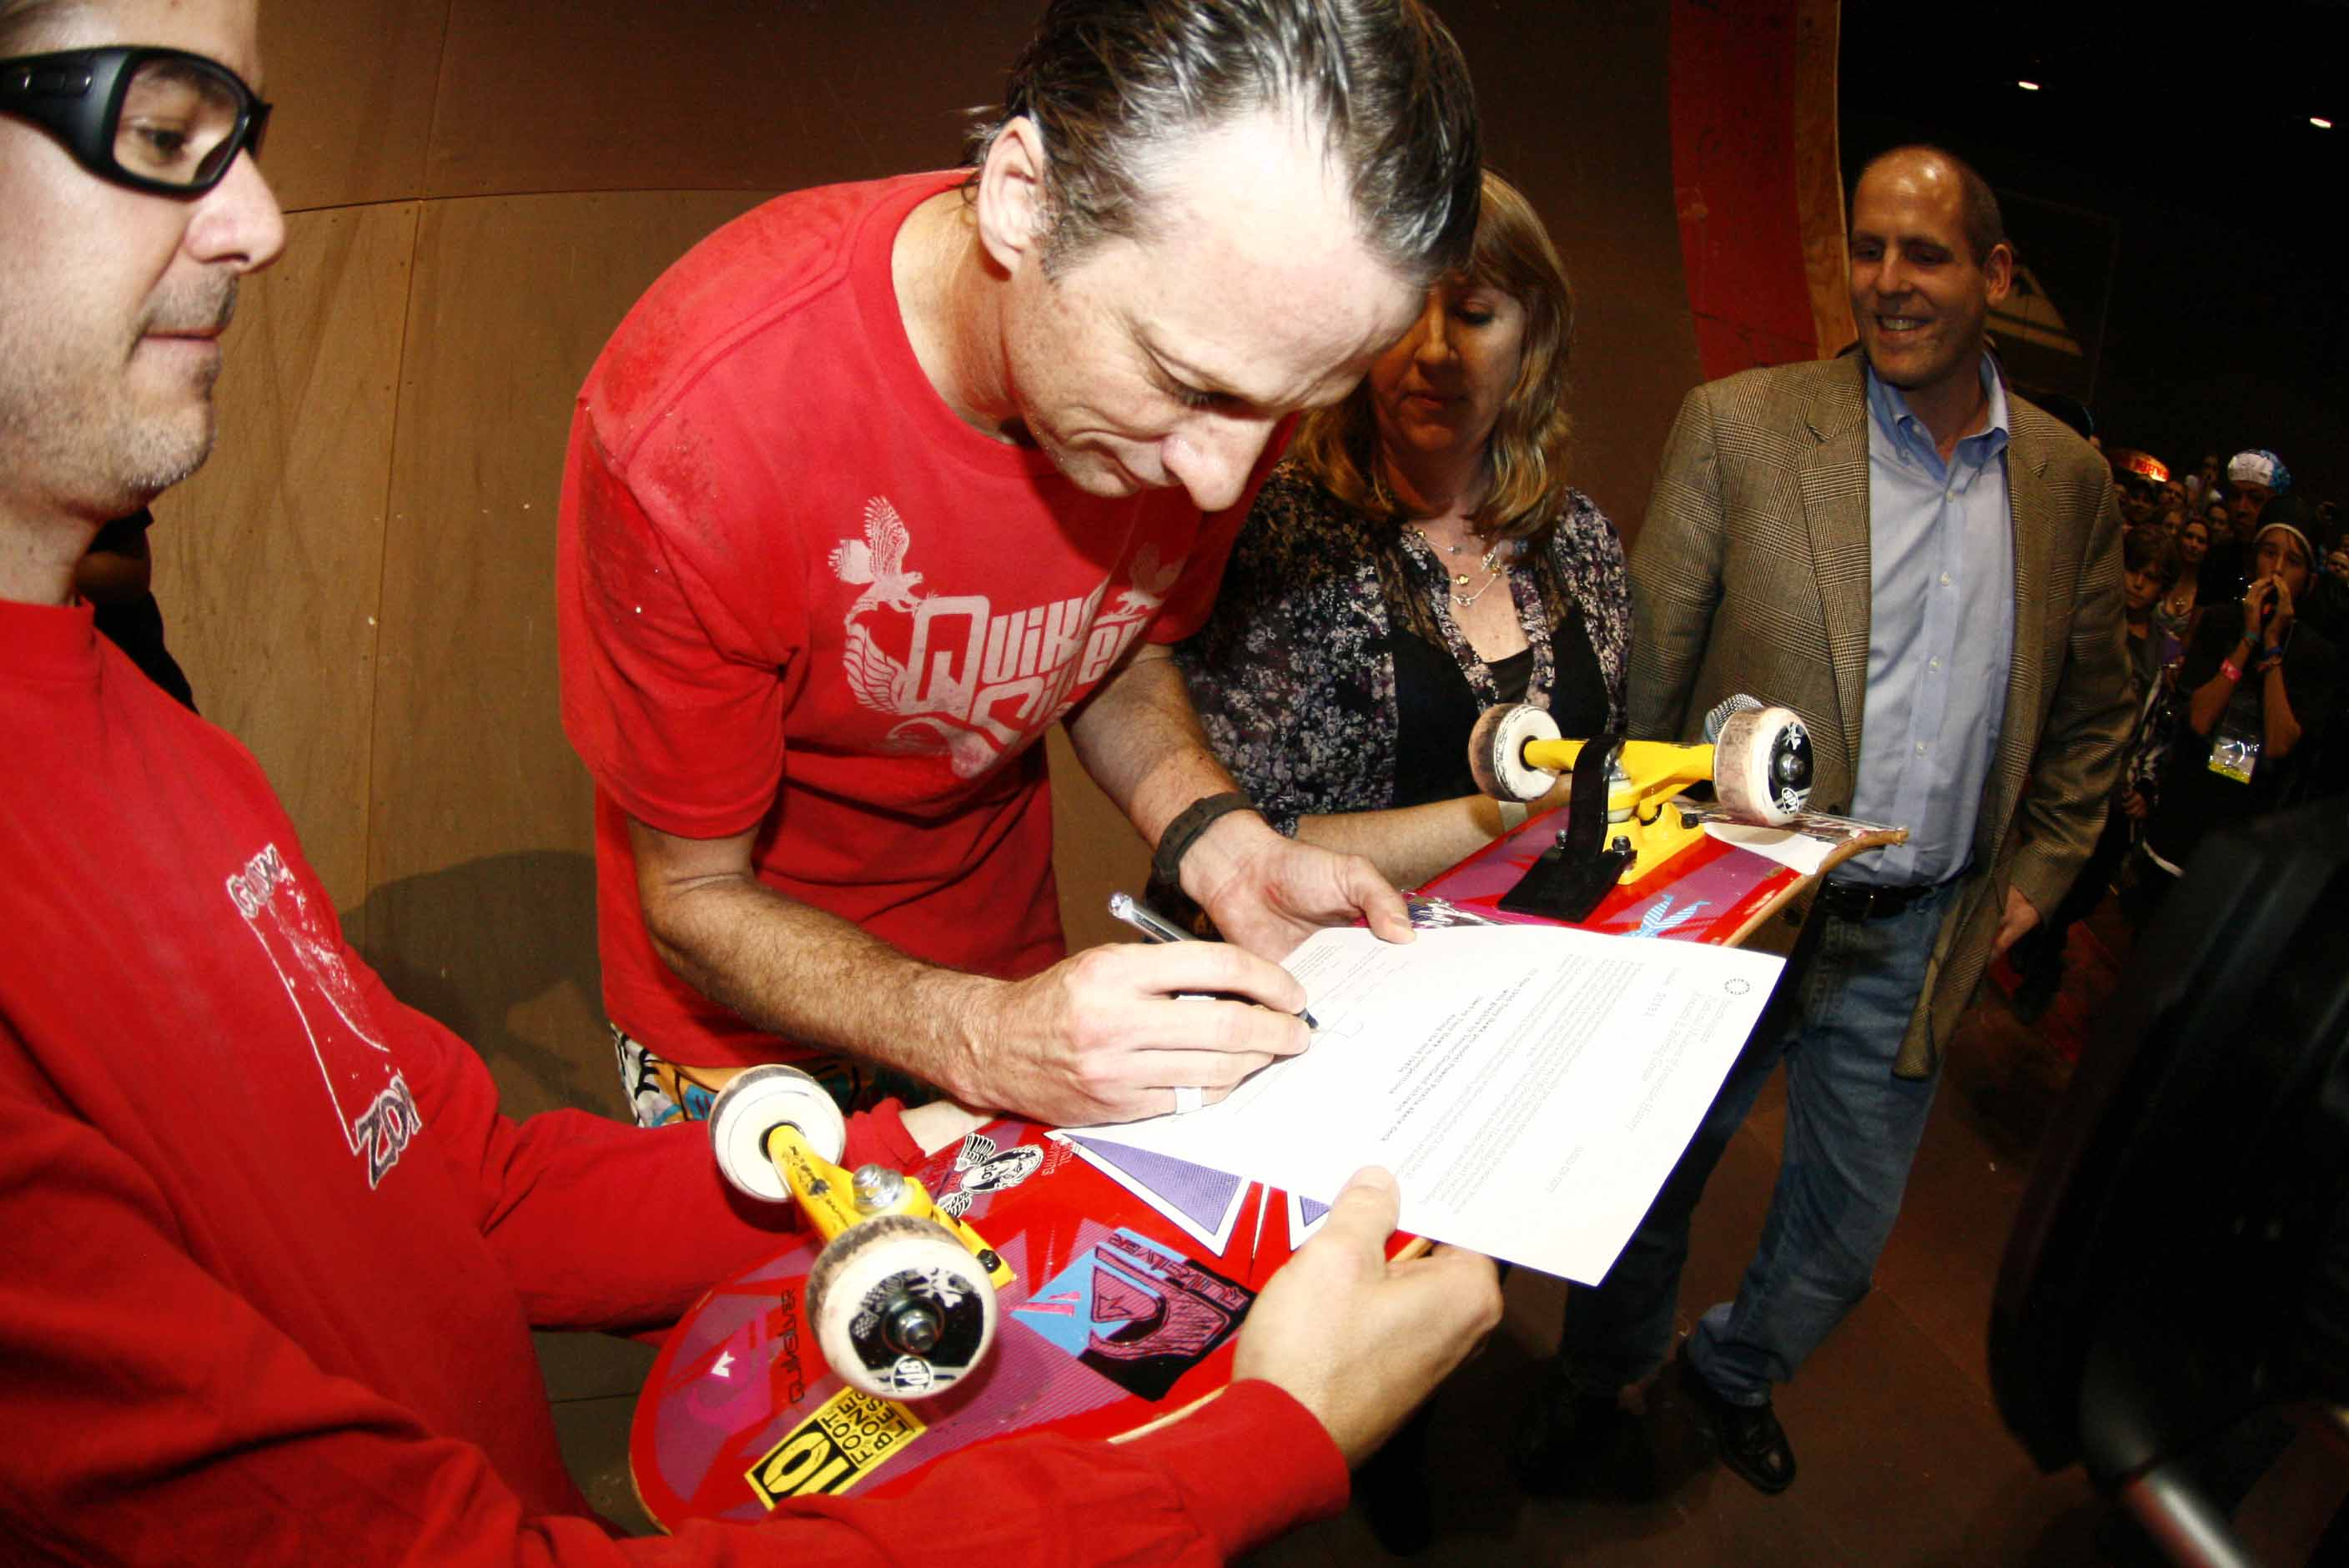 Tony Hawk signs deed of gift while on skate ramp